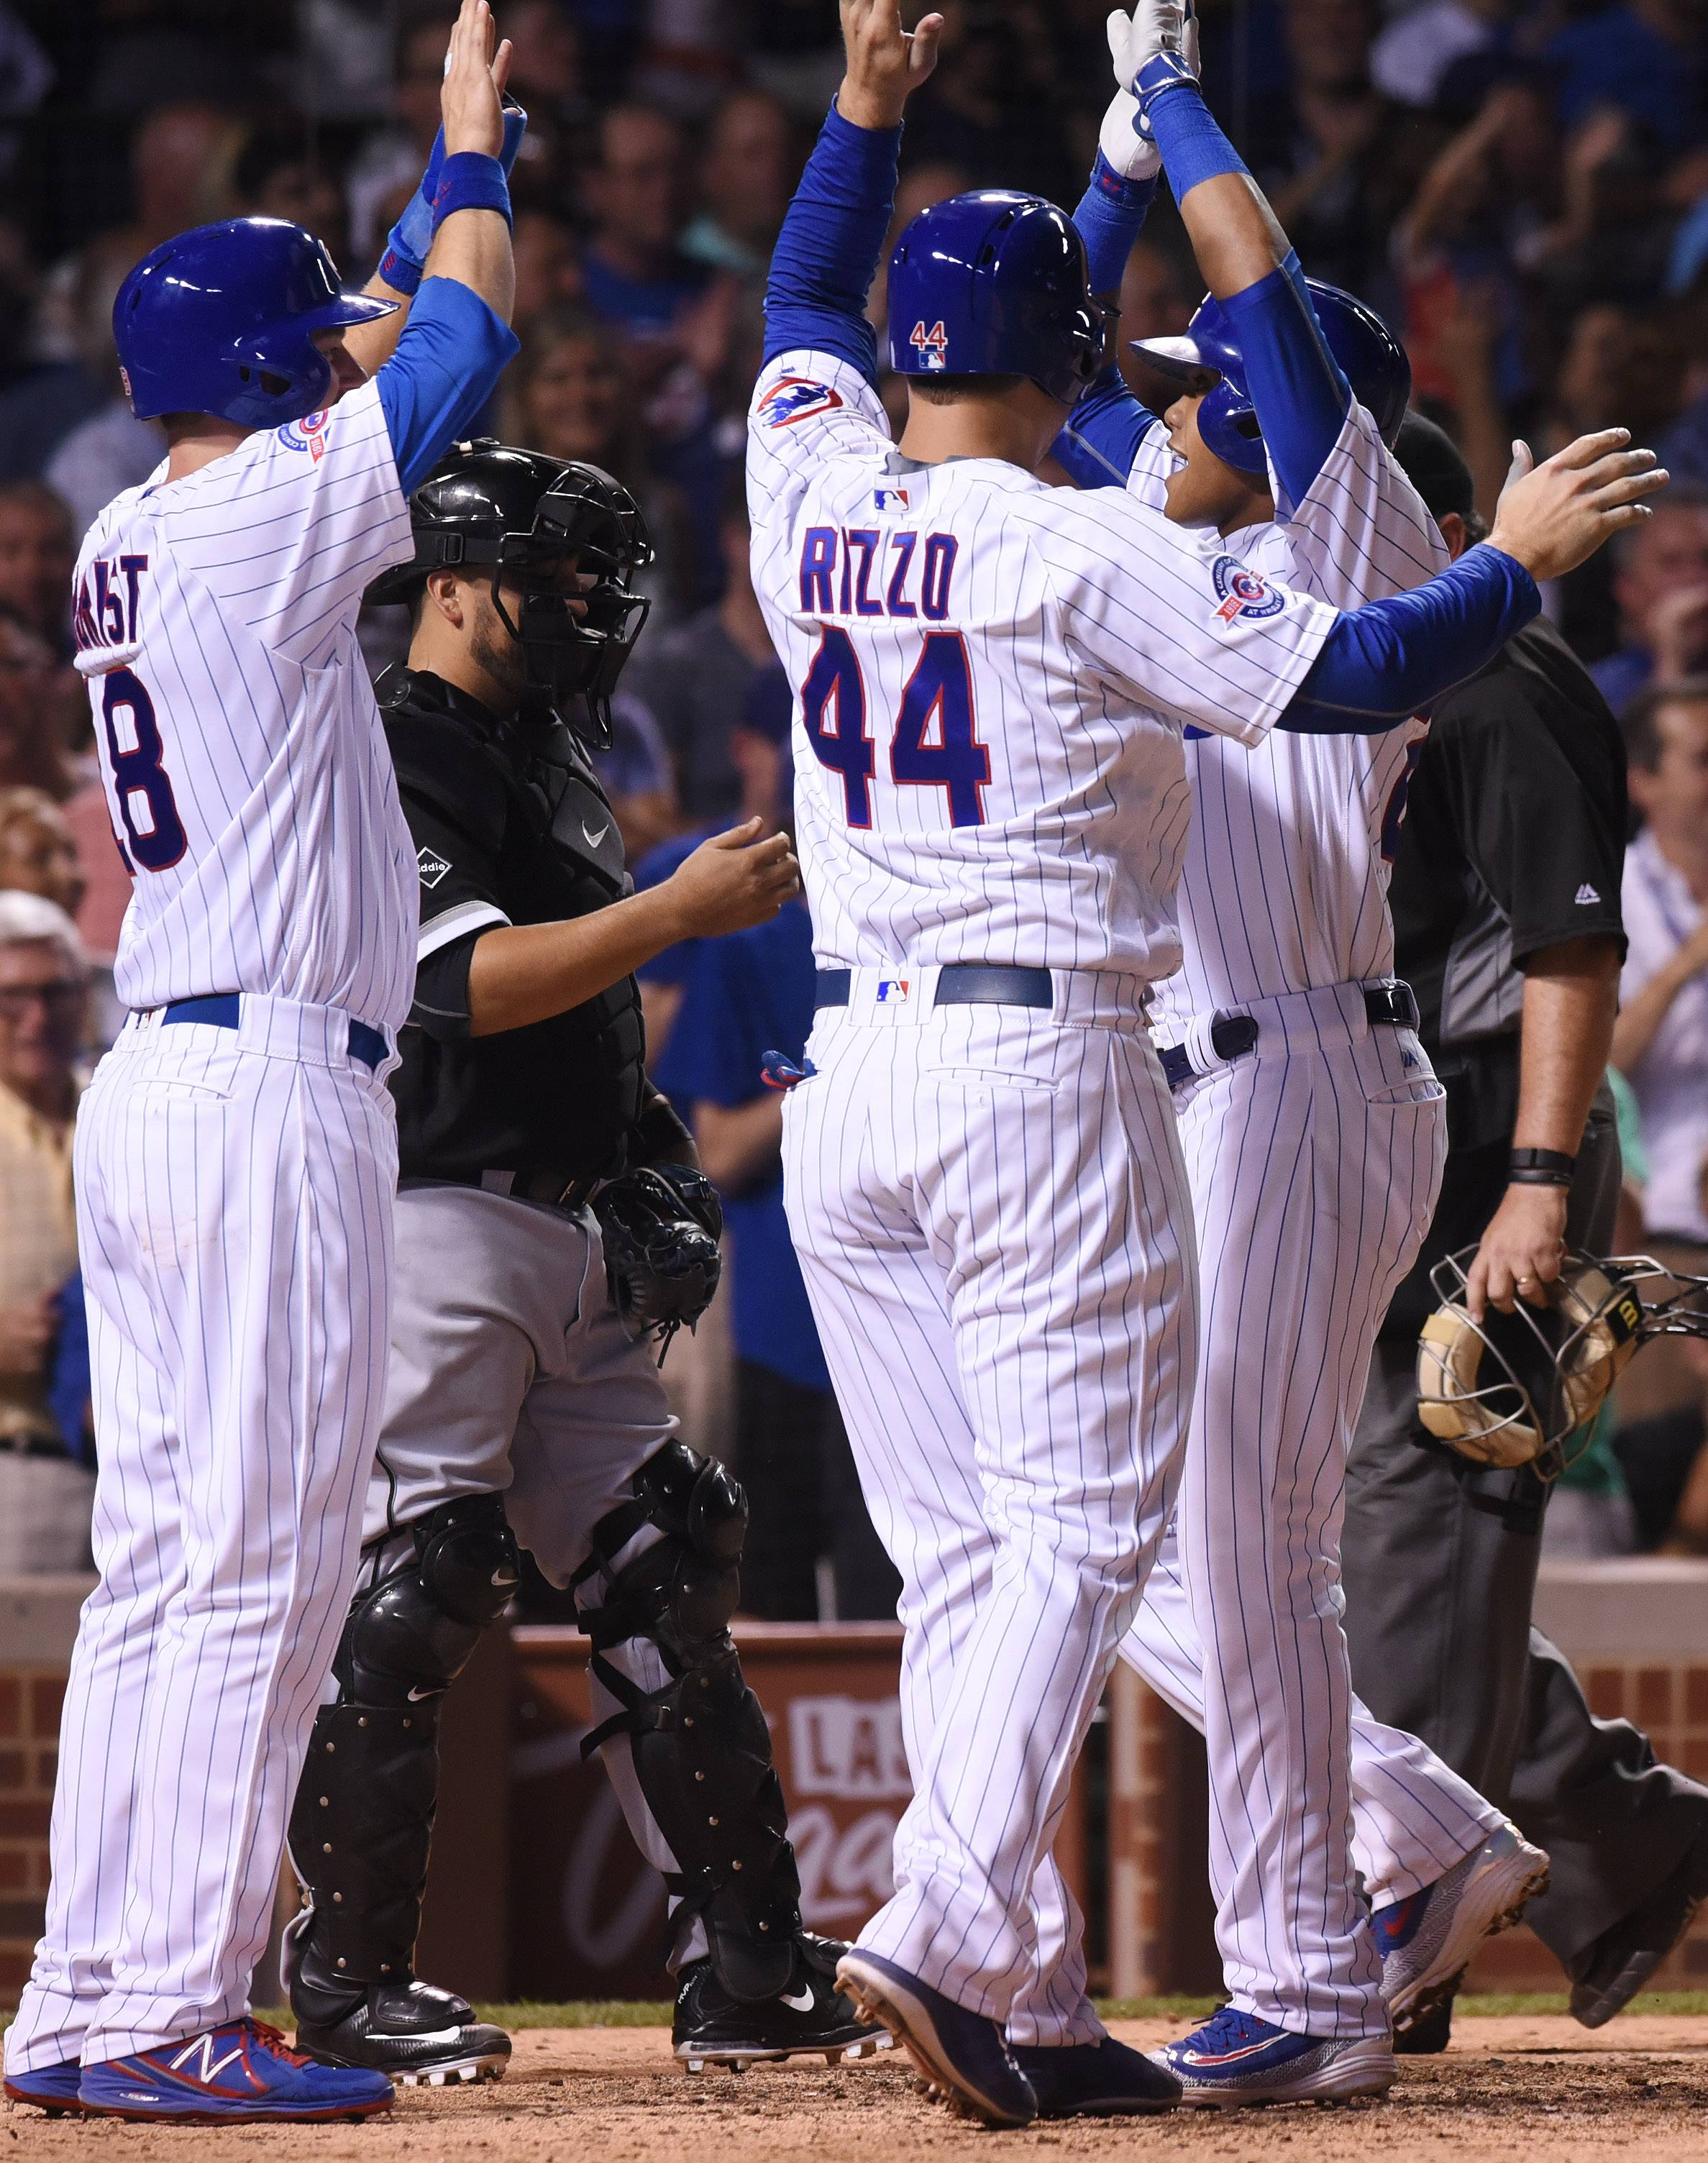 Addison Russell of the Chicago Cubs is greeted by teammates including anthony Rizzo, middle, and Ben Zobrist as he crosses the plate after hitting an eighth-inning grand slam during Wednesday's game against the White Sox at Wrigley Field in Chicago.